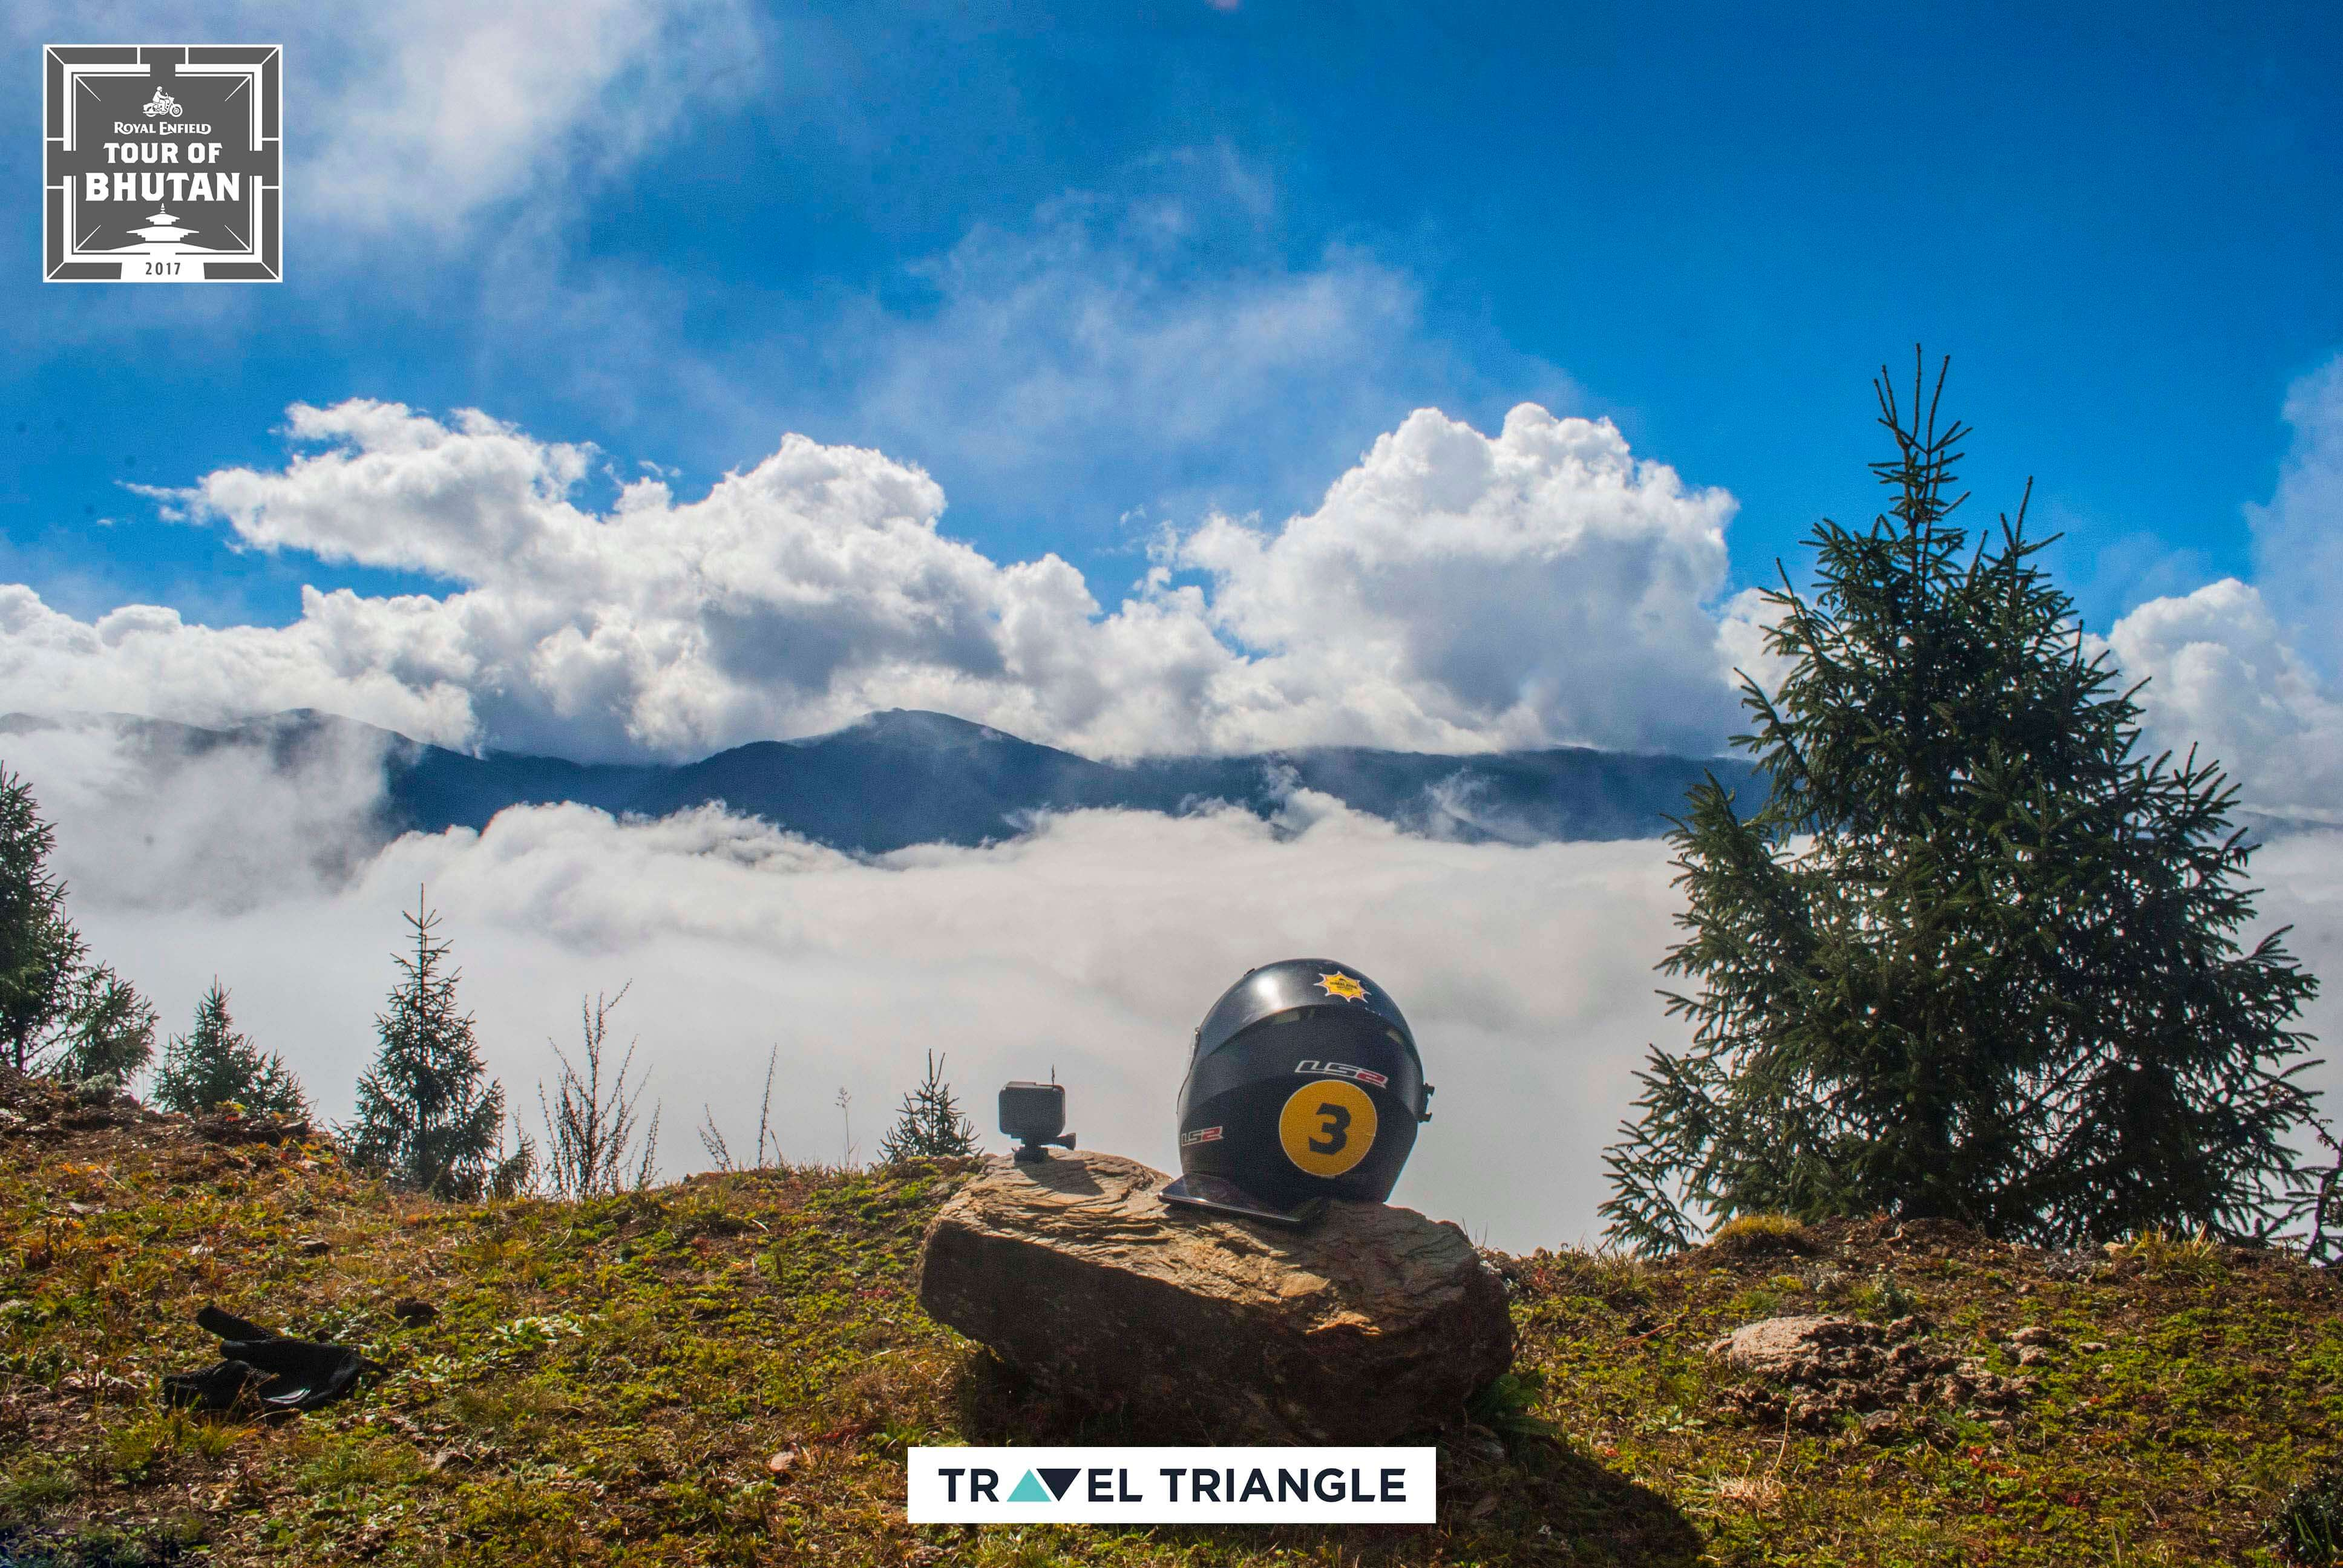 royal enfield india bhutan road trip: a bike helmet and clouds beyond it on the hill